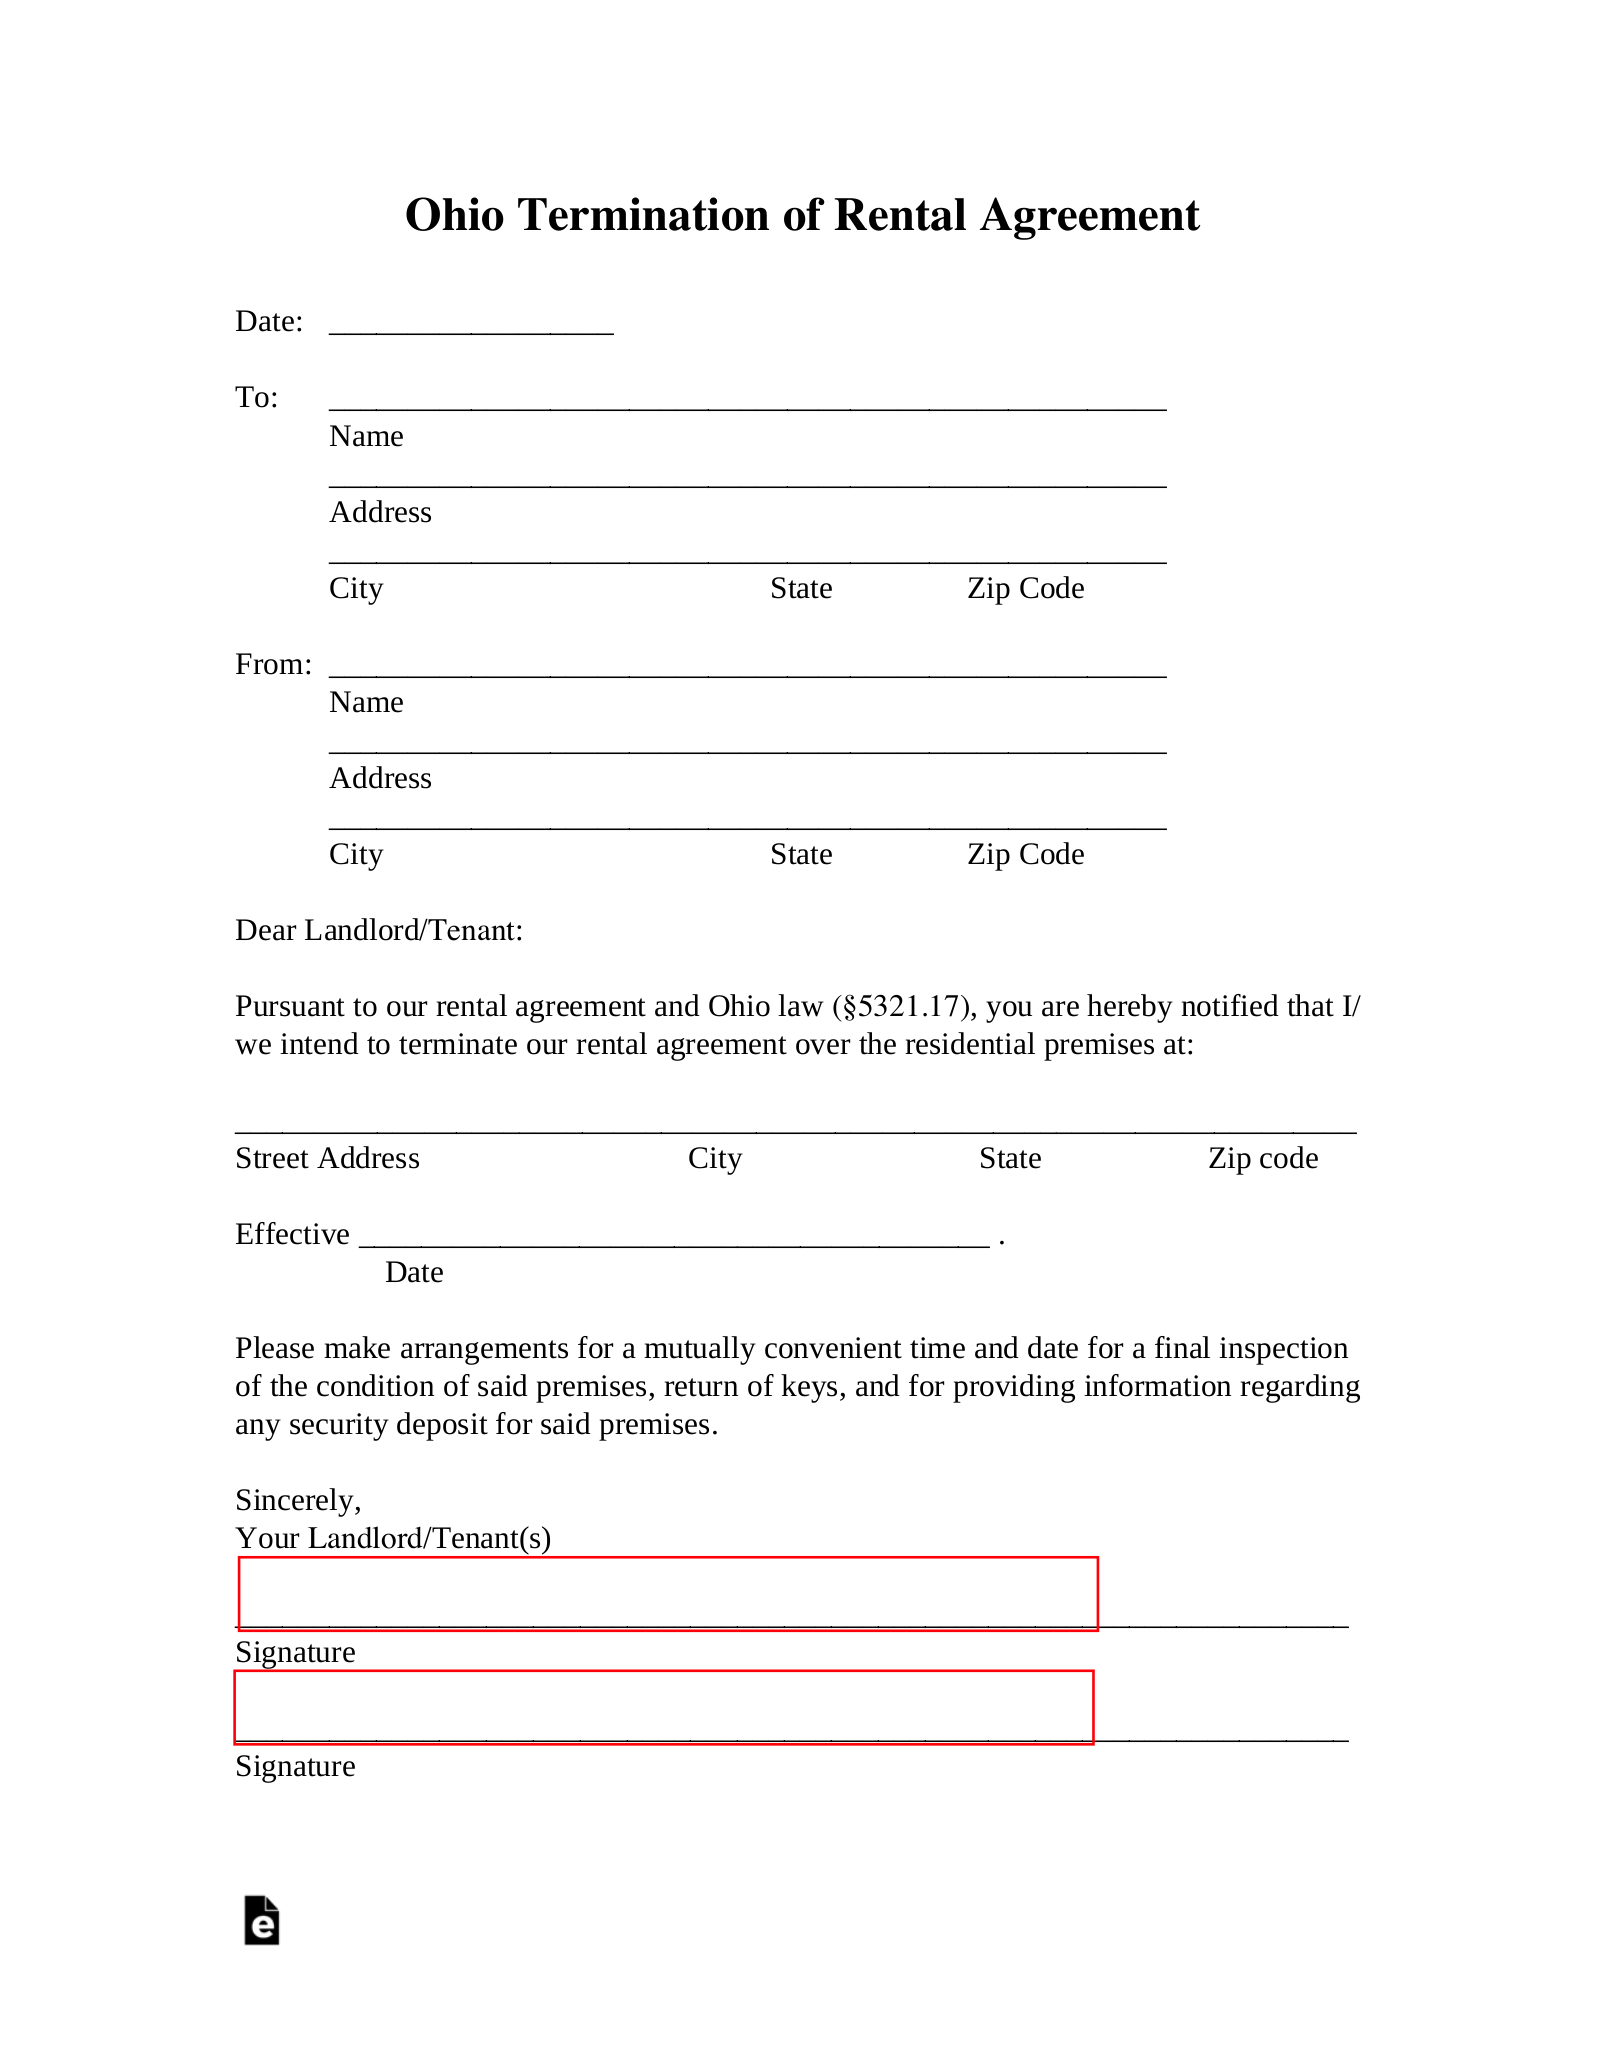 Ohio Lease Termination Letter Form 30 Day Notice Eforms